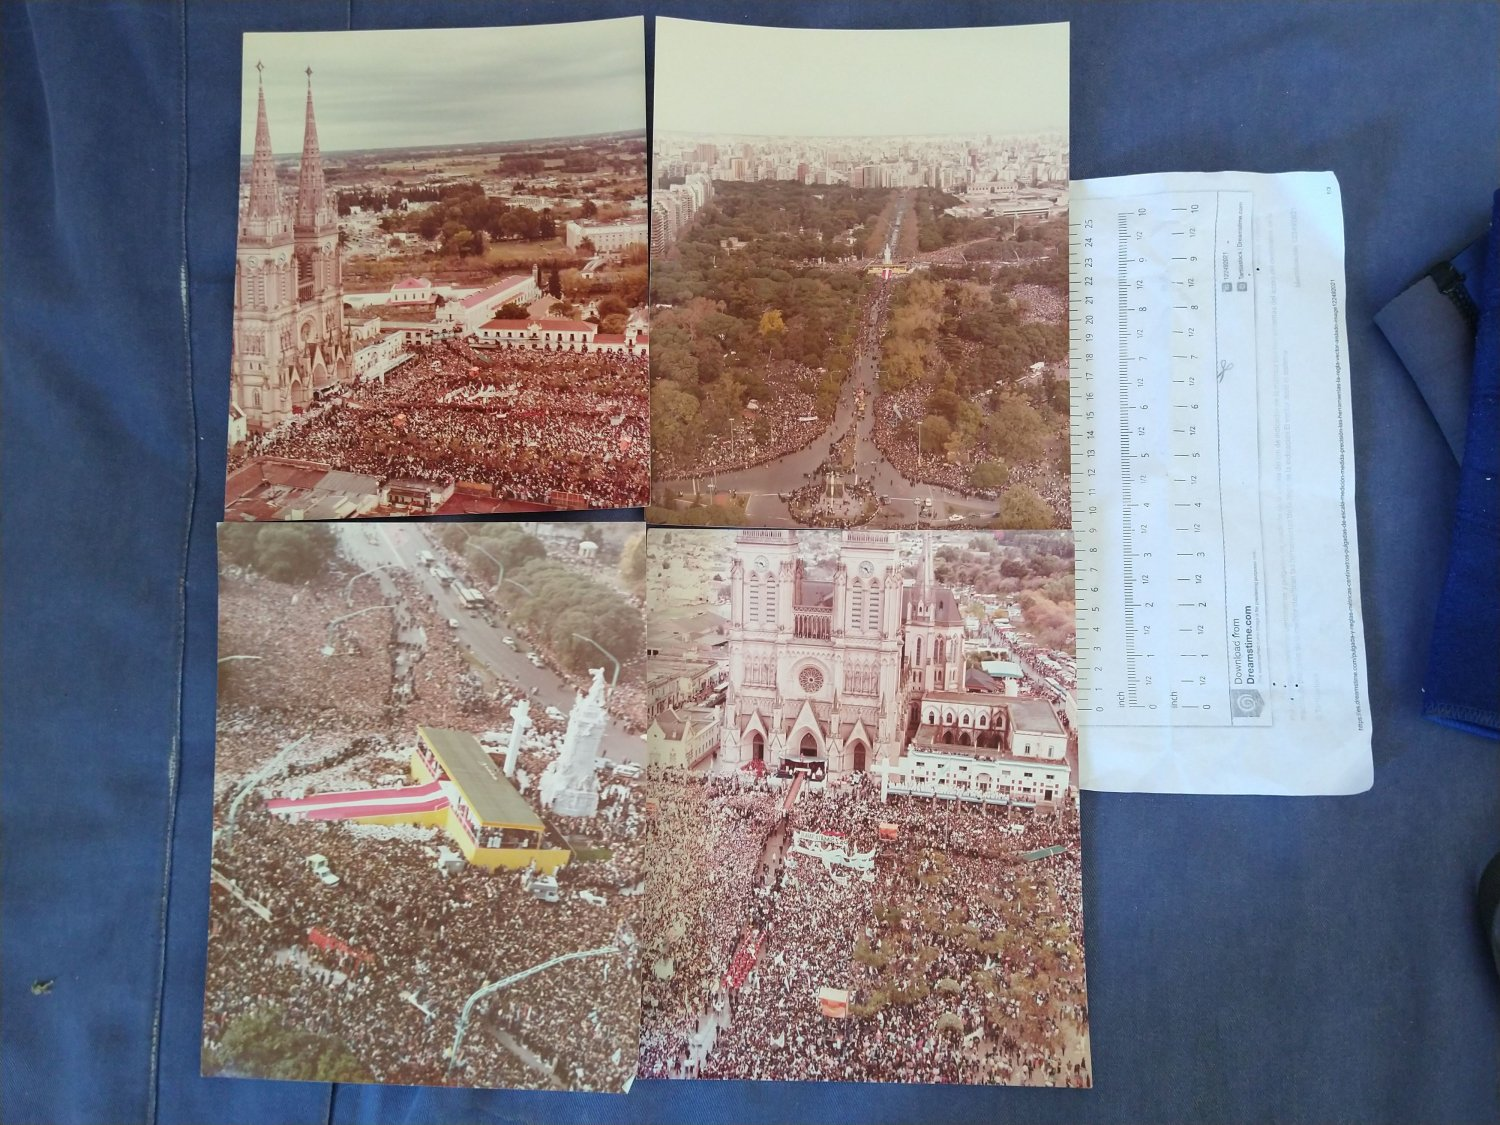 Argentina Argentine John Paul II Pope during Malvinas Falklands War ORIGINAL PRESS 4 PHOTO SET #7 (